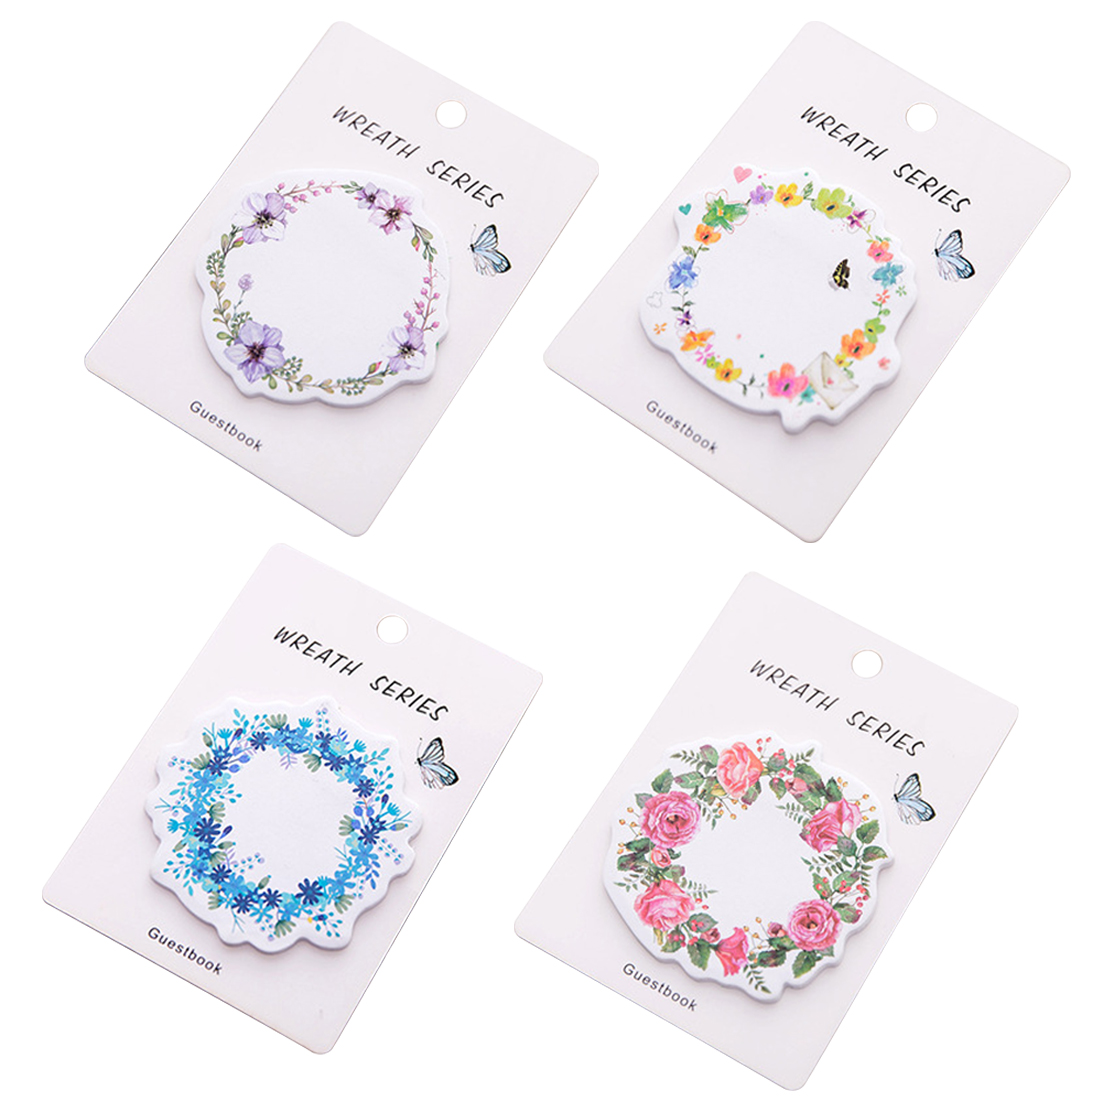 FangNymph Kawaii Wreath Post Notes Weekly Plan Sticky Notes Post Memo Pad Stationery School Supplies Planner Stickers Paper